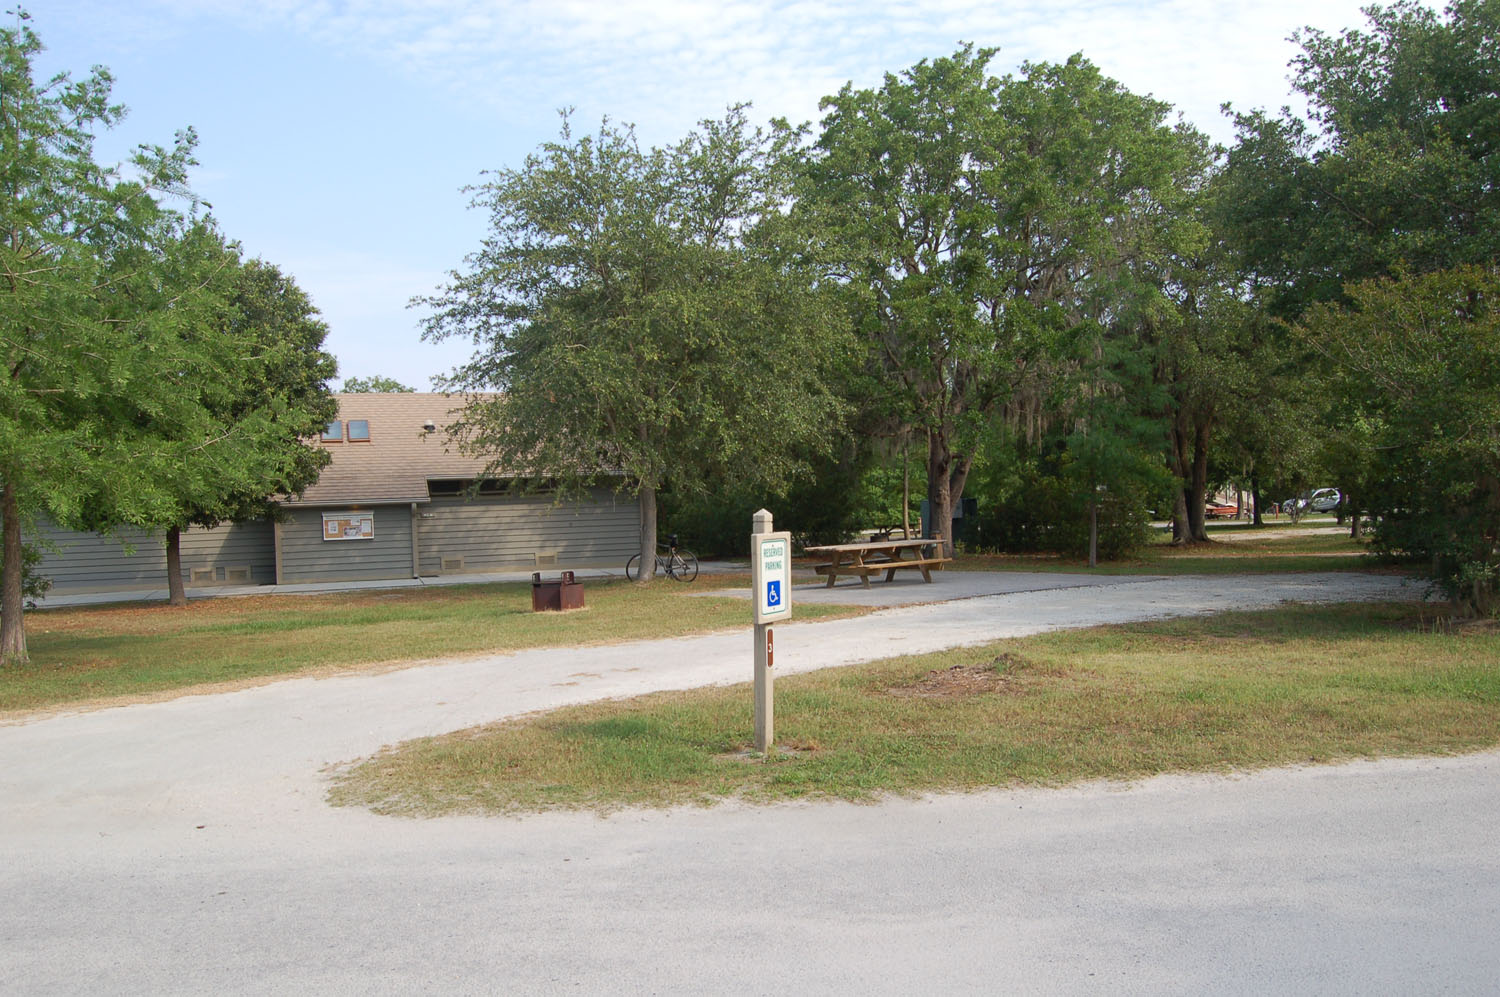 Image of campsite #3 at James Island County Park